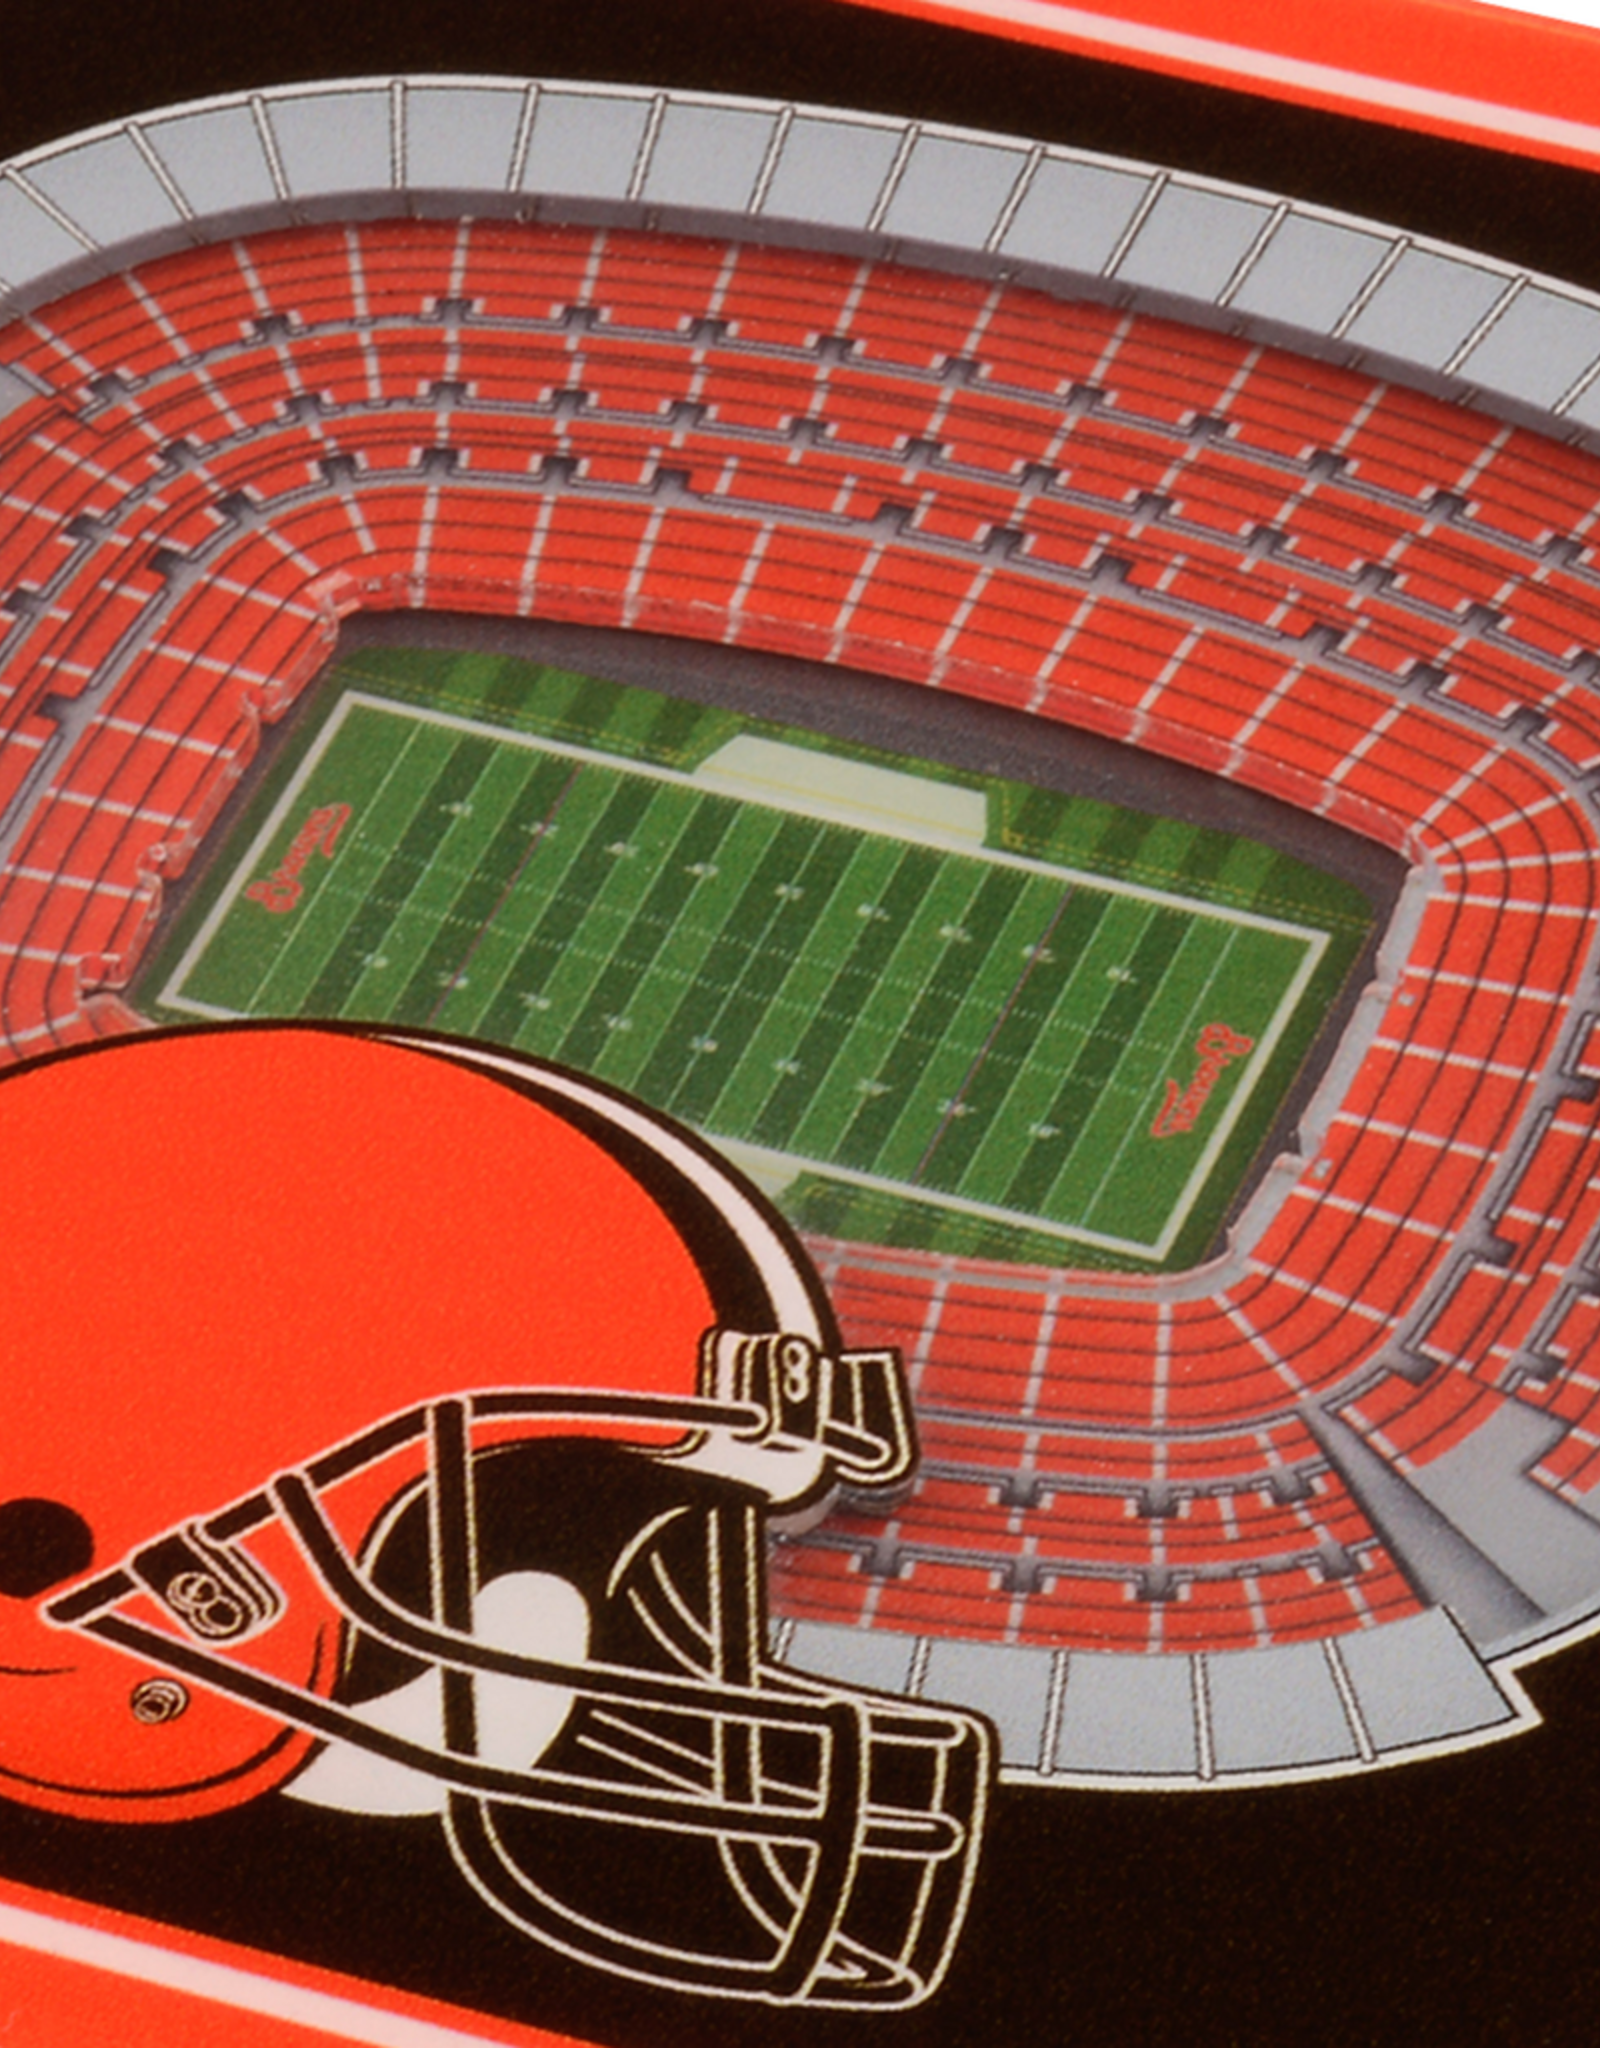 YOU THE FAN Cleveland Browns 3-D StadiumViews Coasters 2-Pack